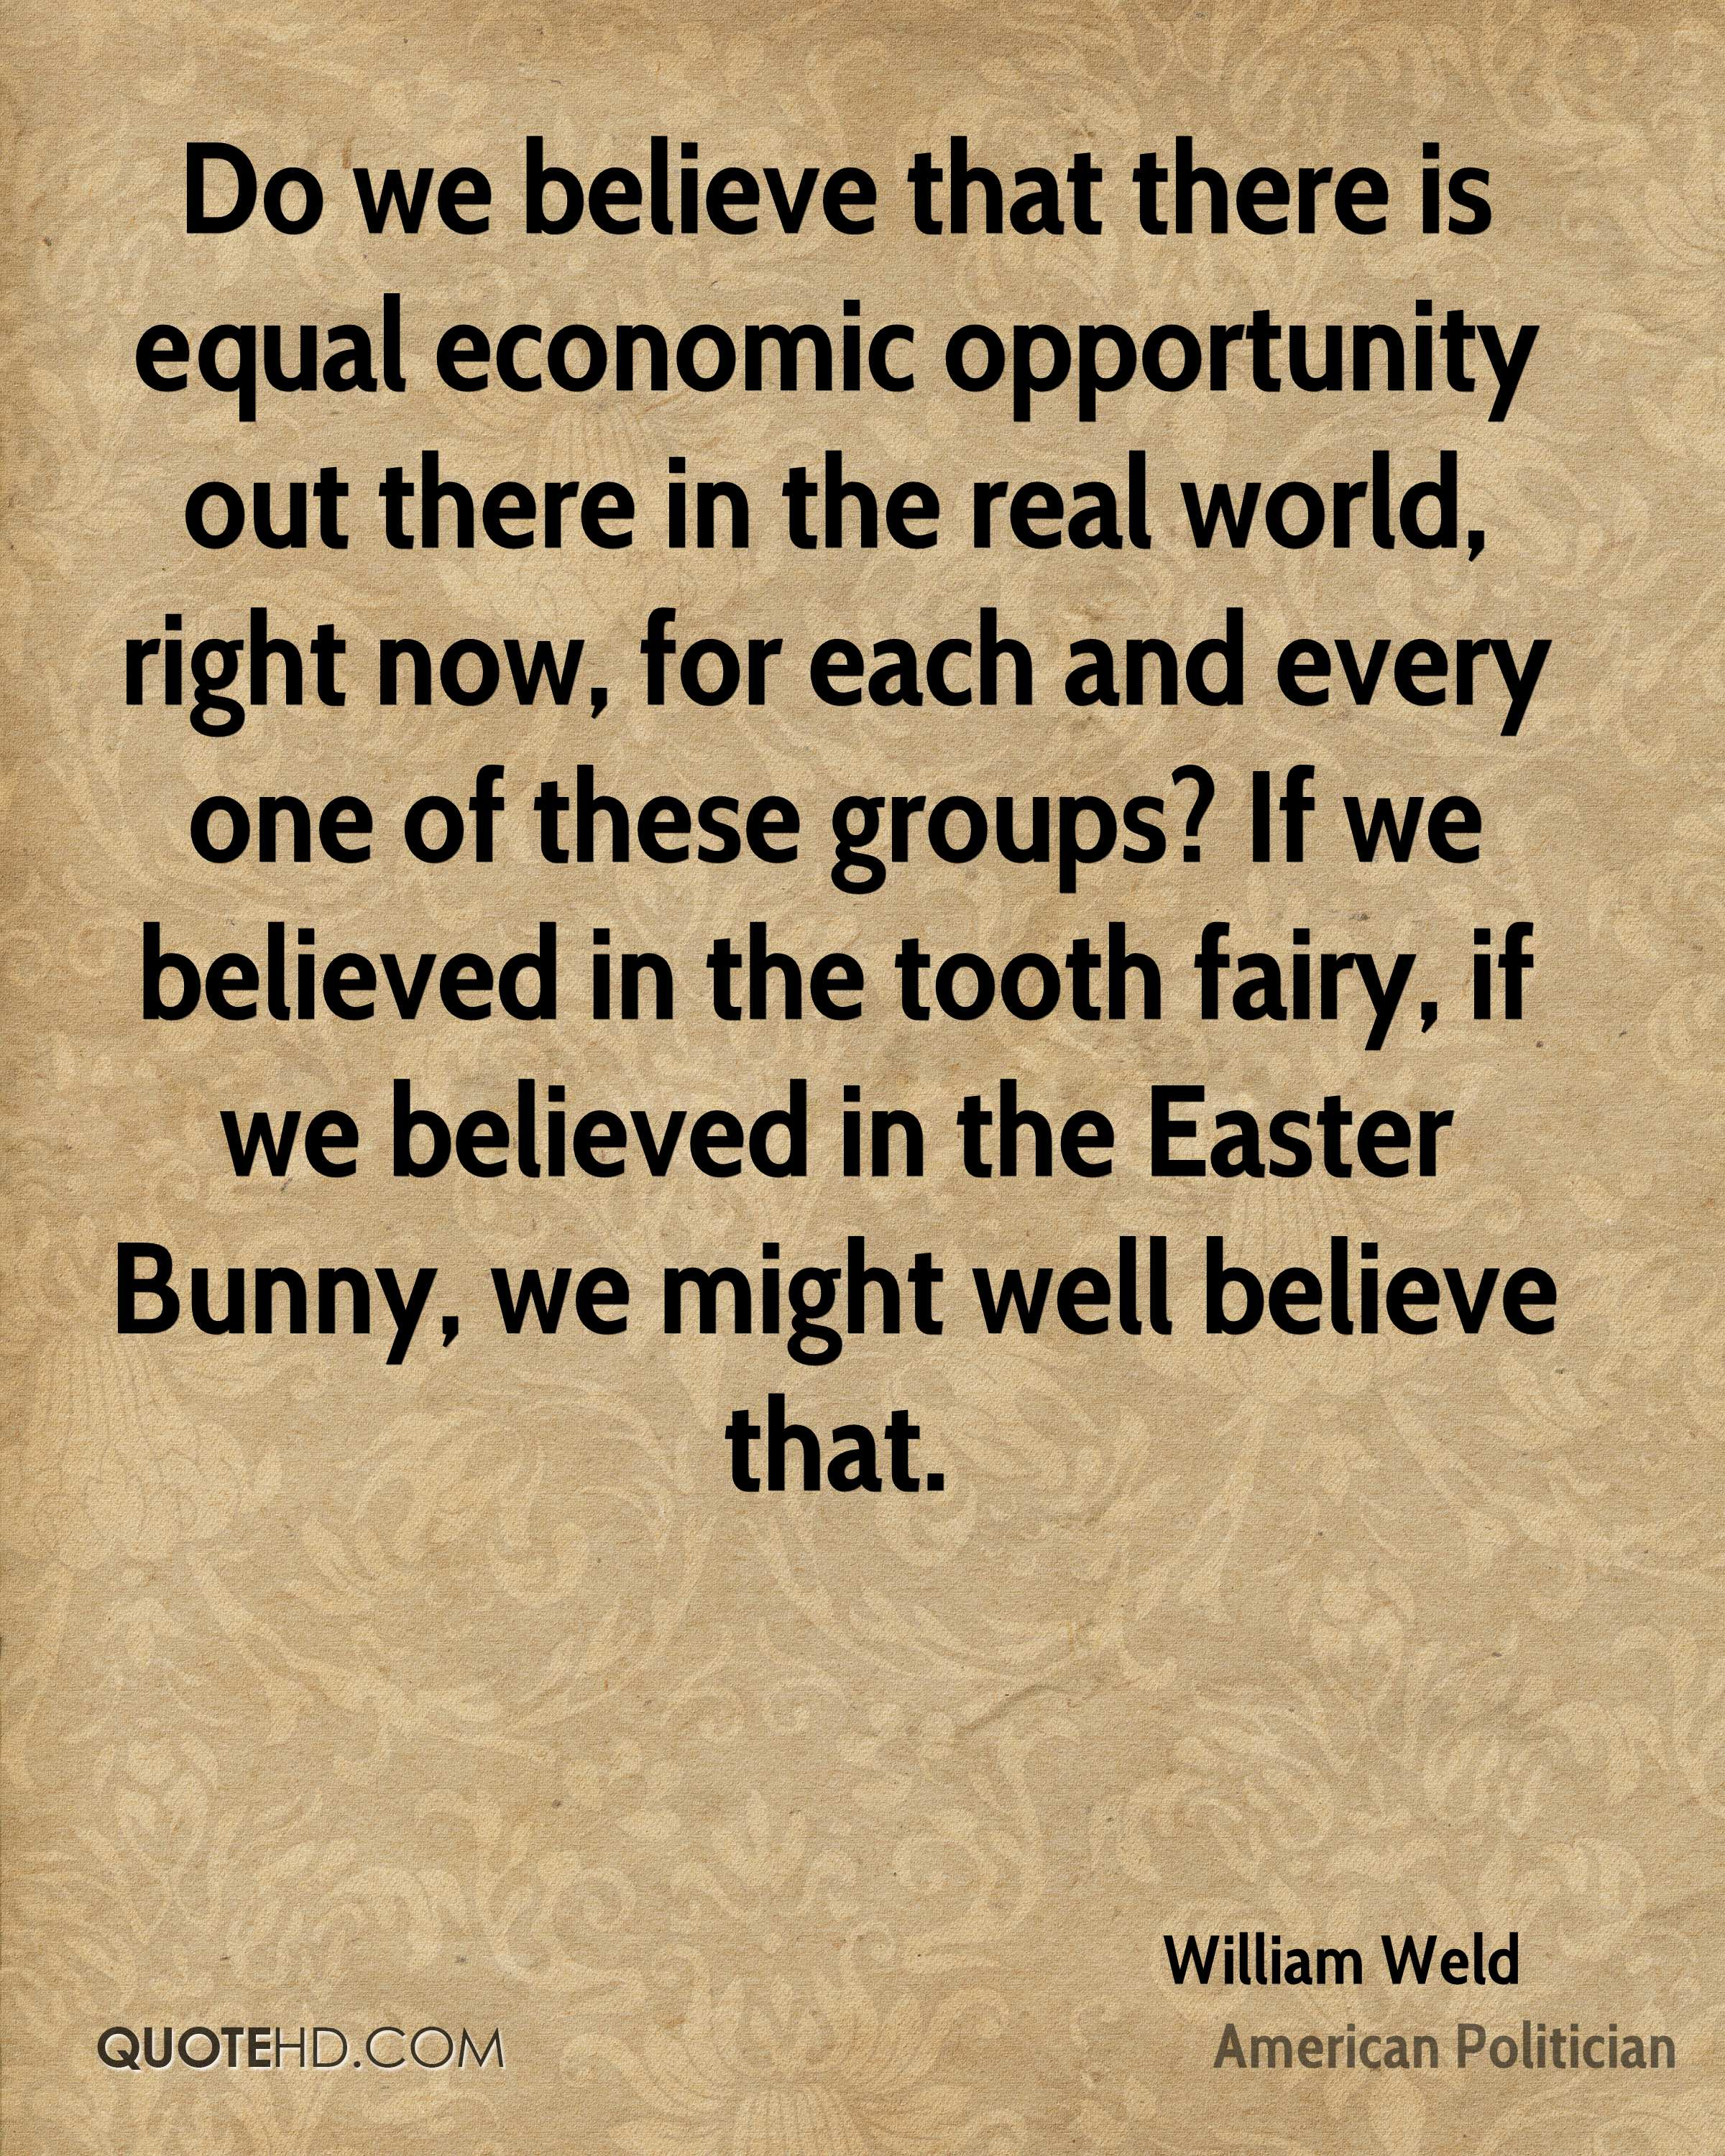 Do we believe that there is equal economic opportunity out there in the real world, right now, for each and every one of these groups? If we believed in the tooth fairy, if we believed in the Easter Bunny, we might well believe that.